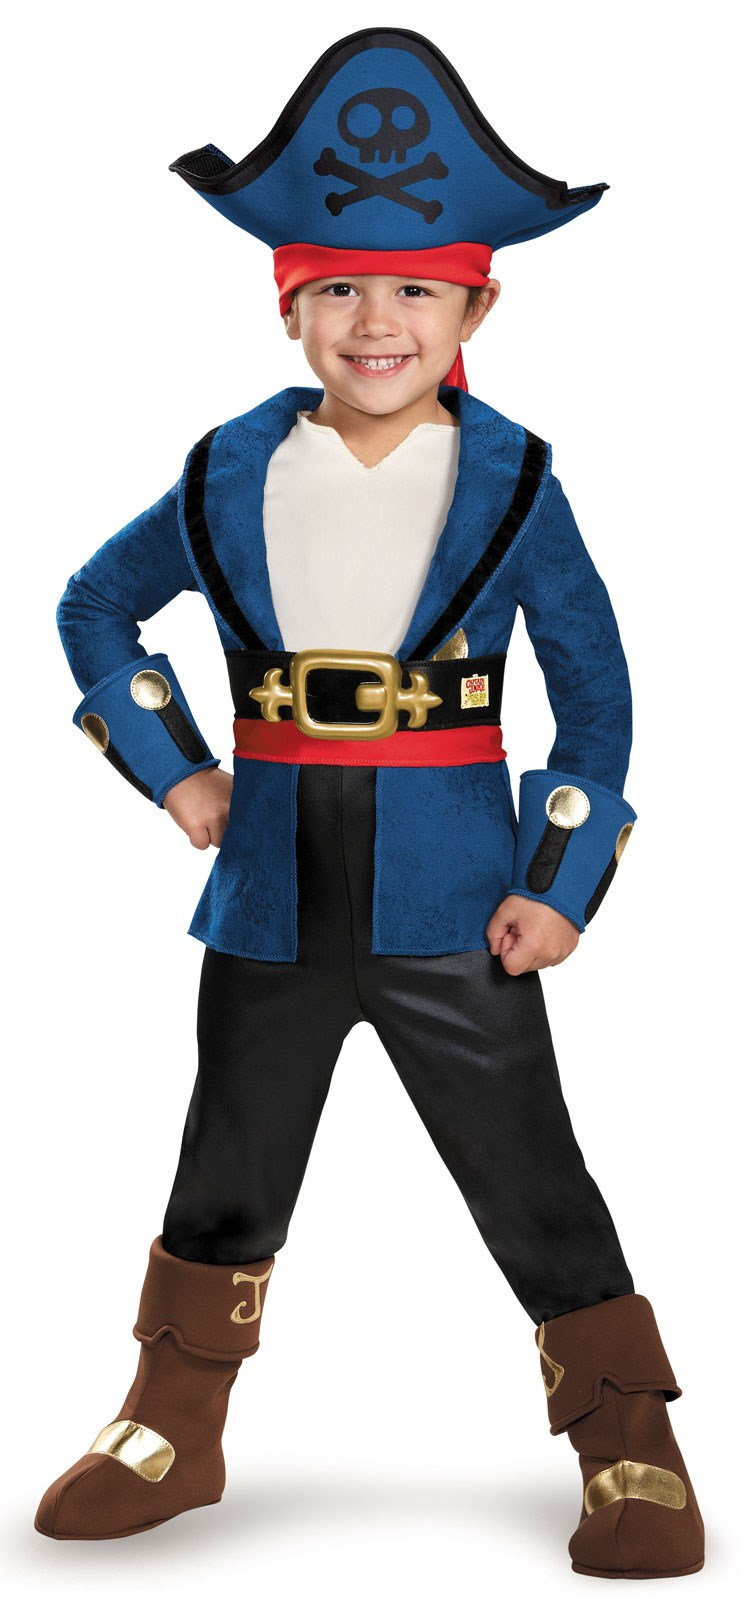 Captain Jake and the Never Land Pirates: Deluxe Captain Jake Costume For Toddlers